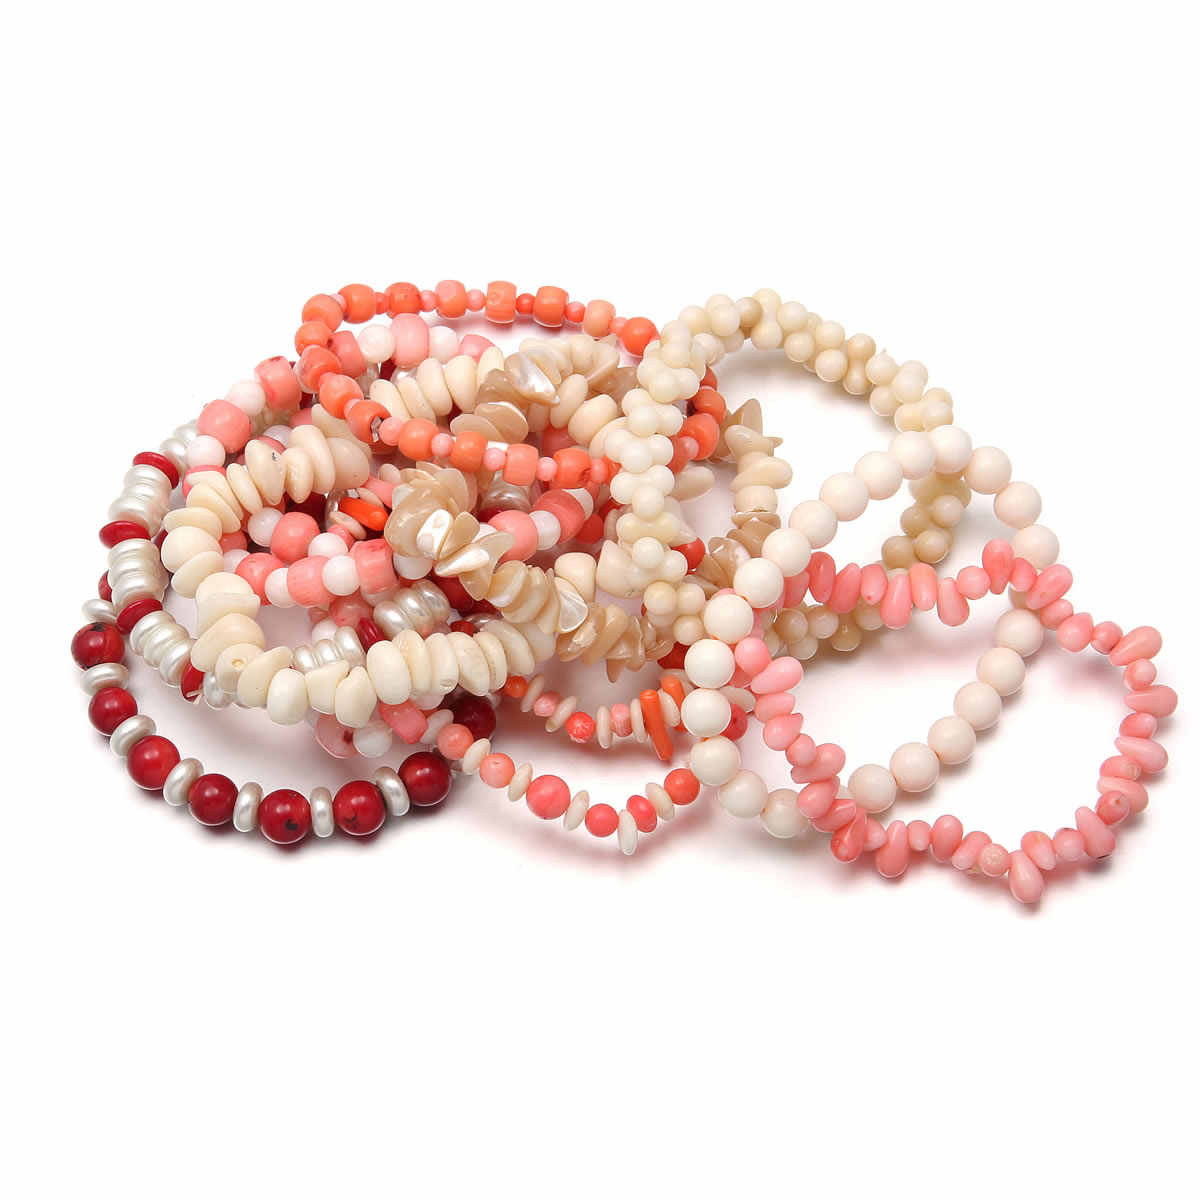 New Fashion Charm Bracelets New Coral Stone Beaded Bracelets for Women Jewelry Coral Beads Jewelry Gifts for Women  18cm